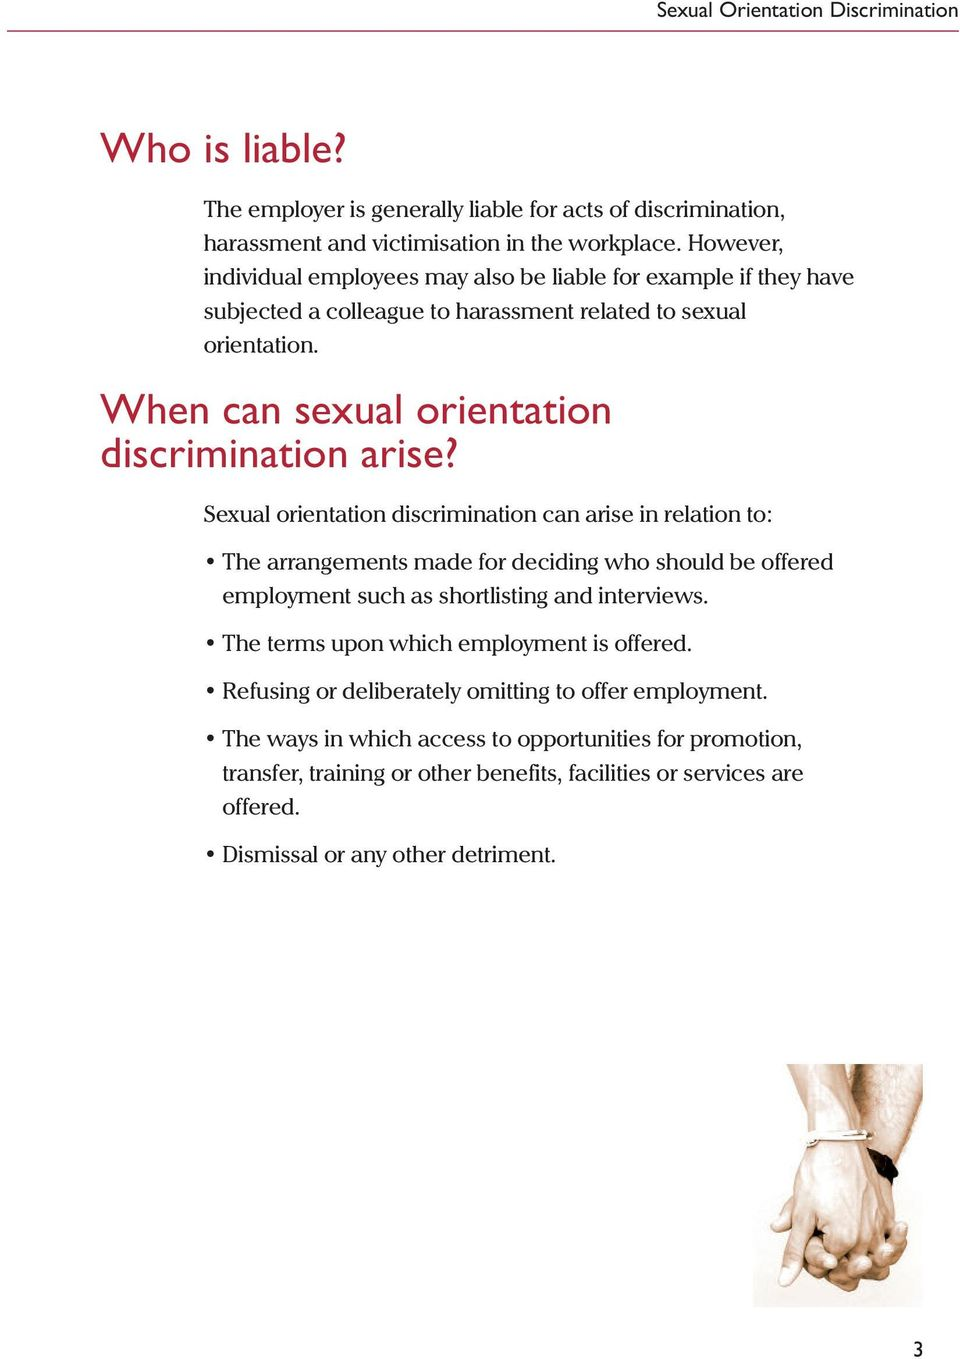 When can sexual orientation discrimination arise?